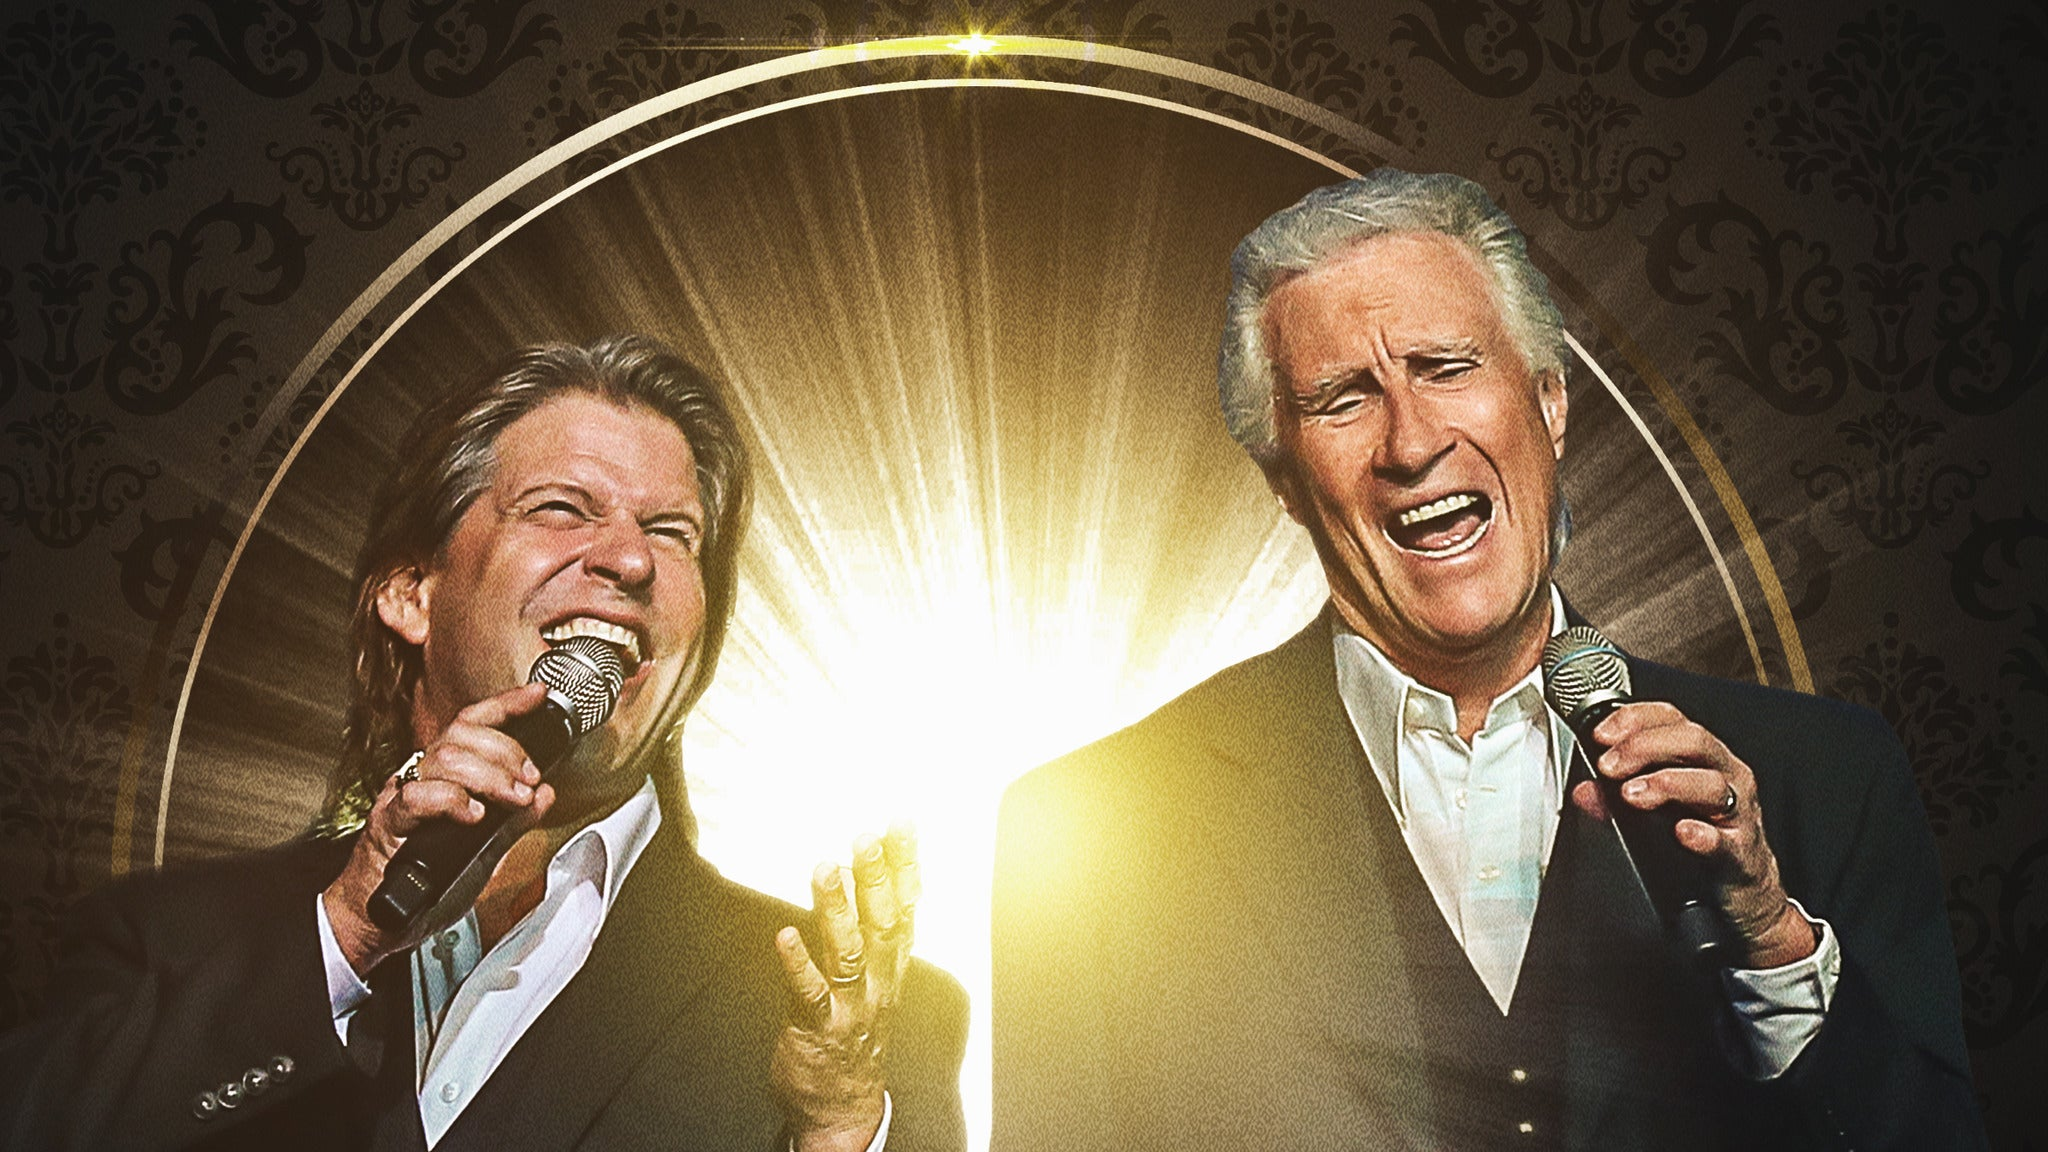 Righteous Brothers at Sharon L Morse Performing Arts Center